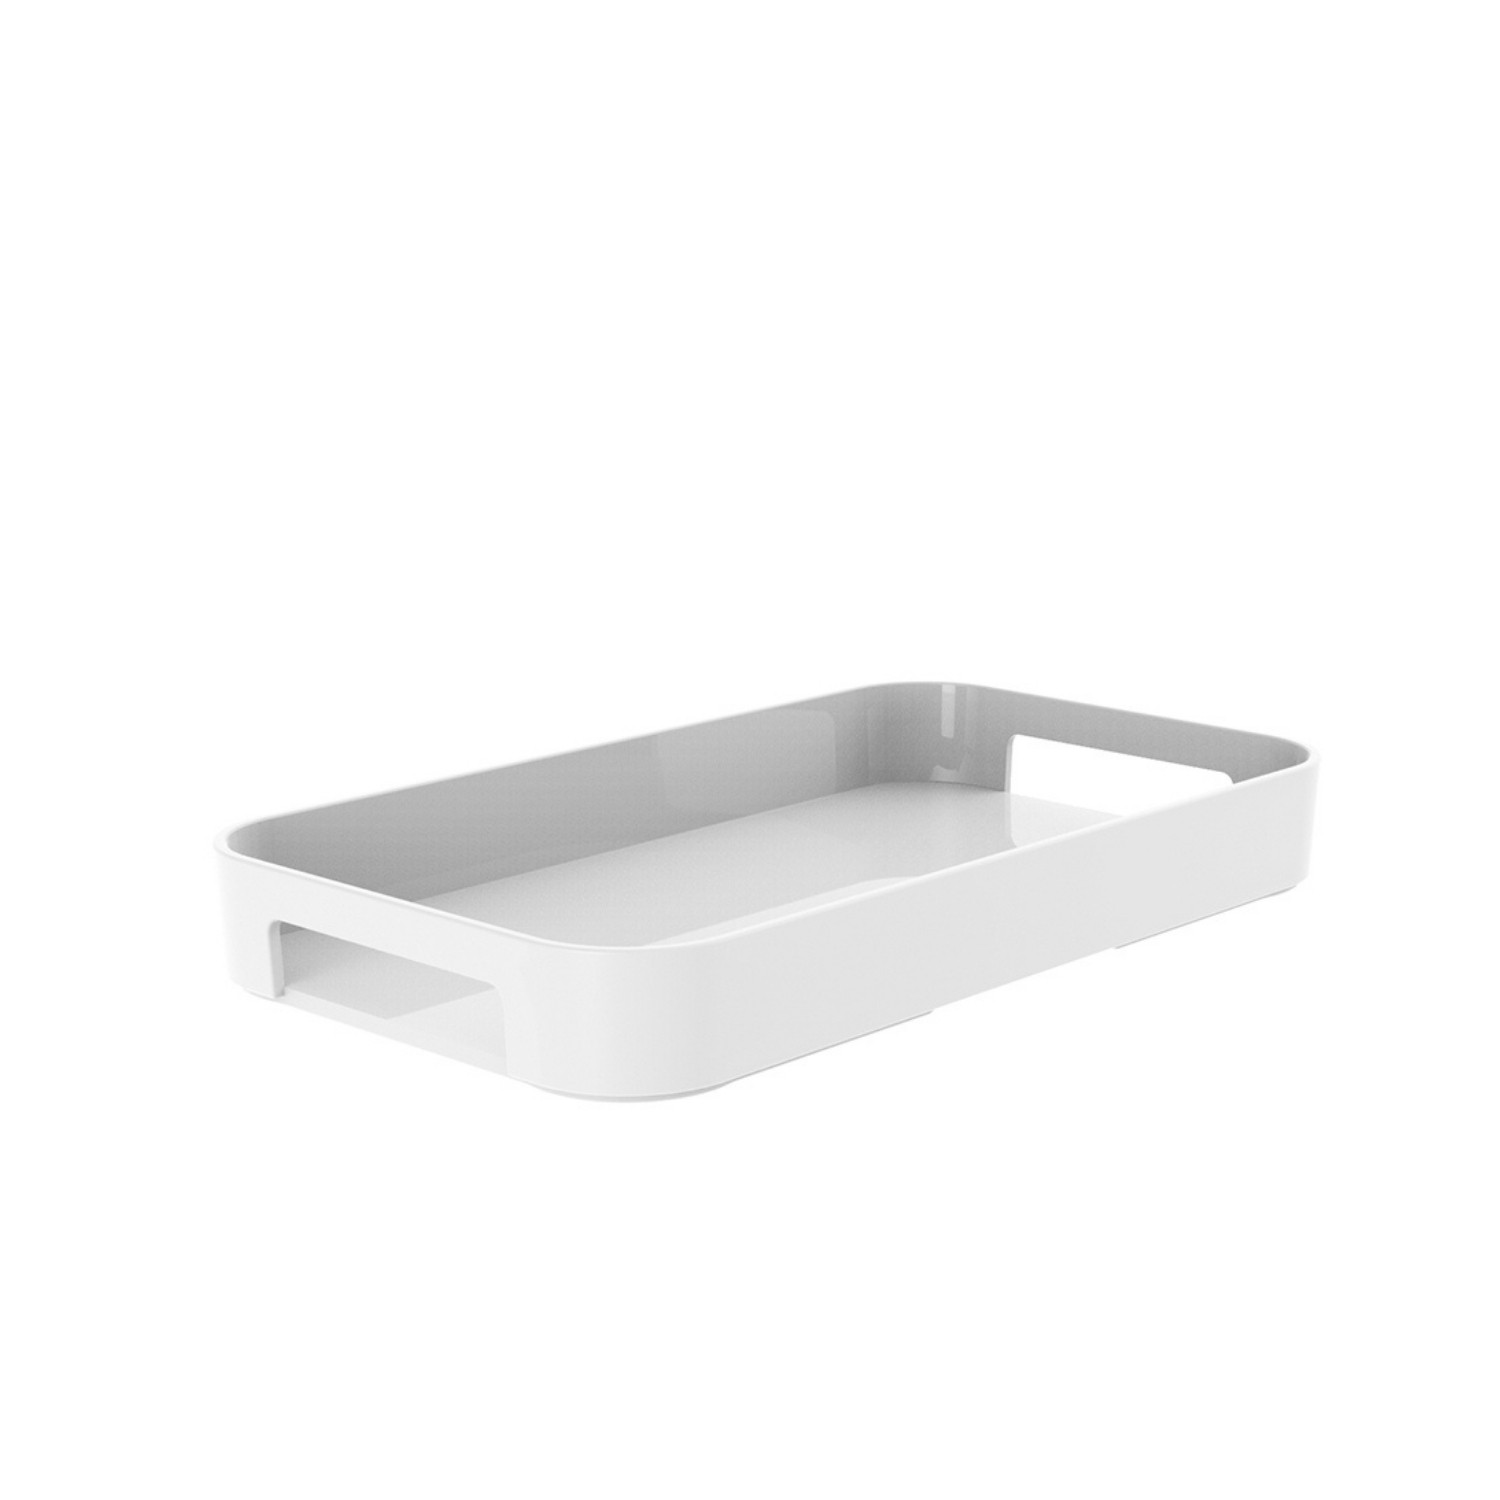 GALLERY - Plateau rectangulaire M - blanc